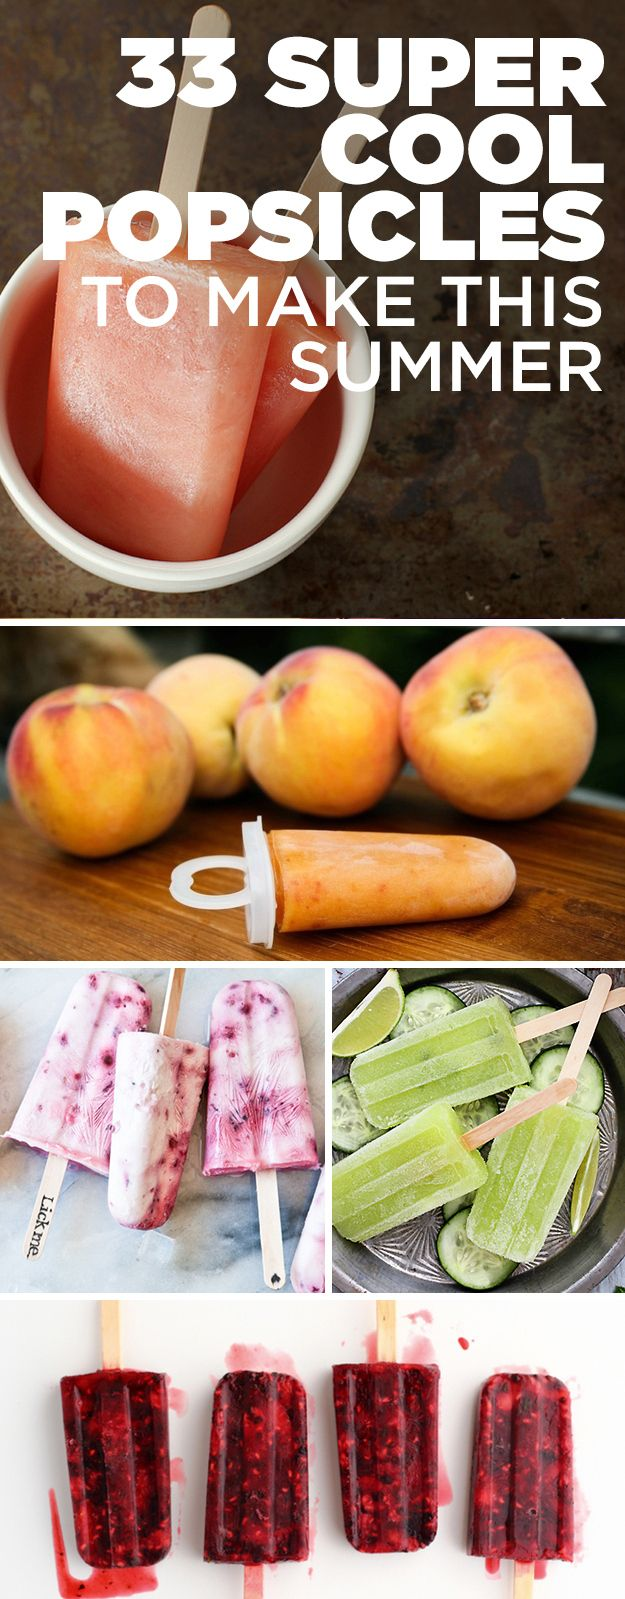 33 Super-Cool Popsicles To Make This Summer - BuzzFeed Mobile